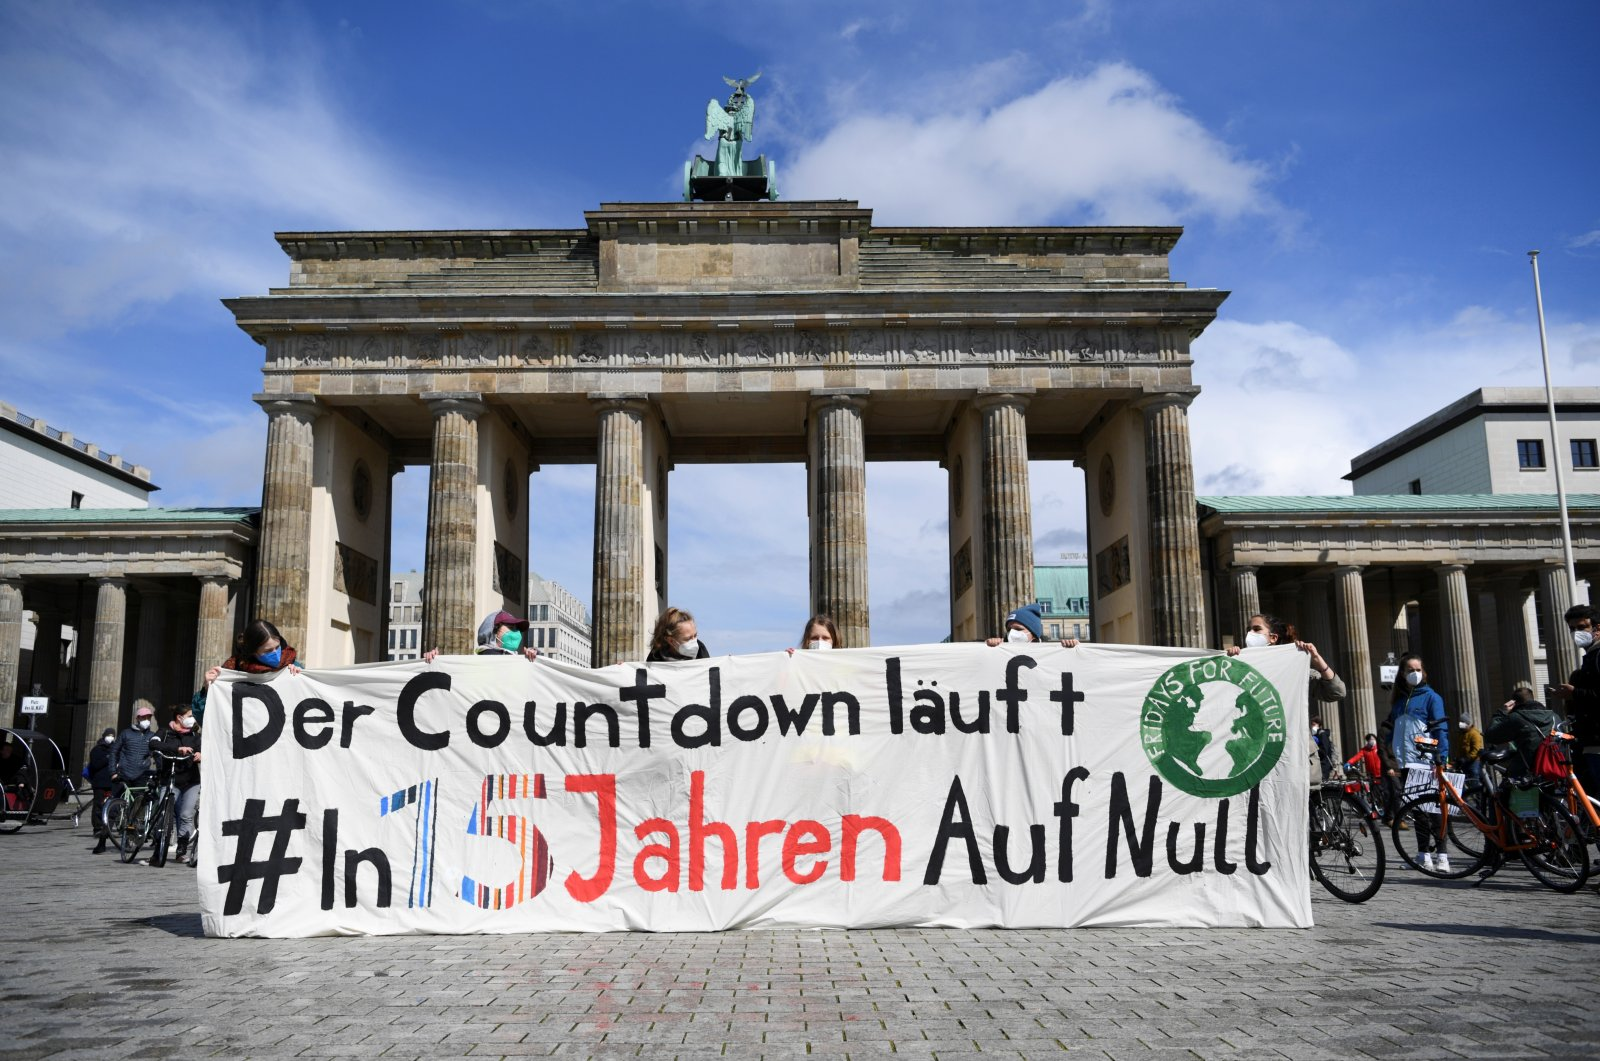 """Cyclists attend a Fridays for Future bike protest for climate neutrality till 2035, in front of the Brandenburg Gate in Berlin, Germany May 7, 2021. The banner reads: """"The countdown is running! In 15 years to zero."""" (Reuters File Photo)"""